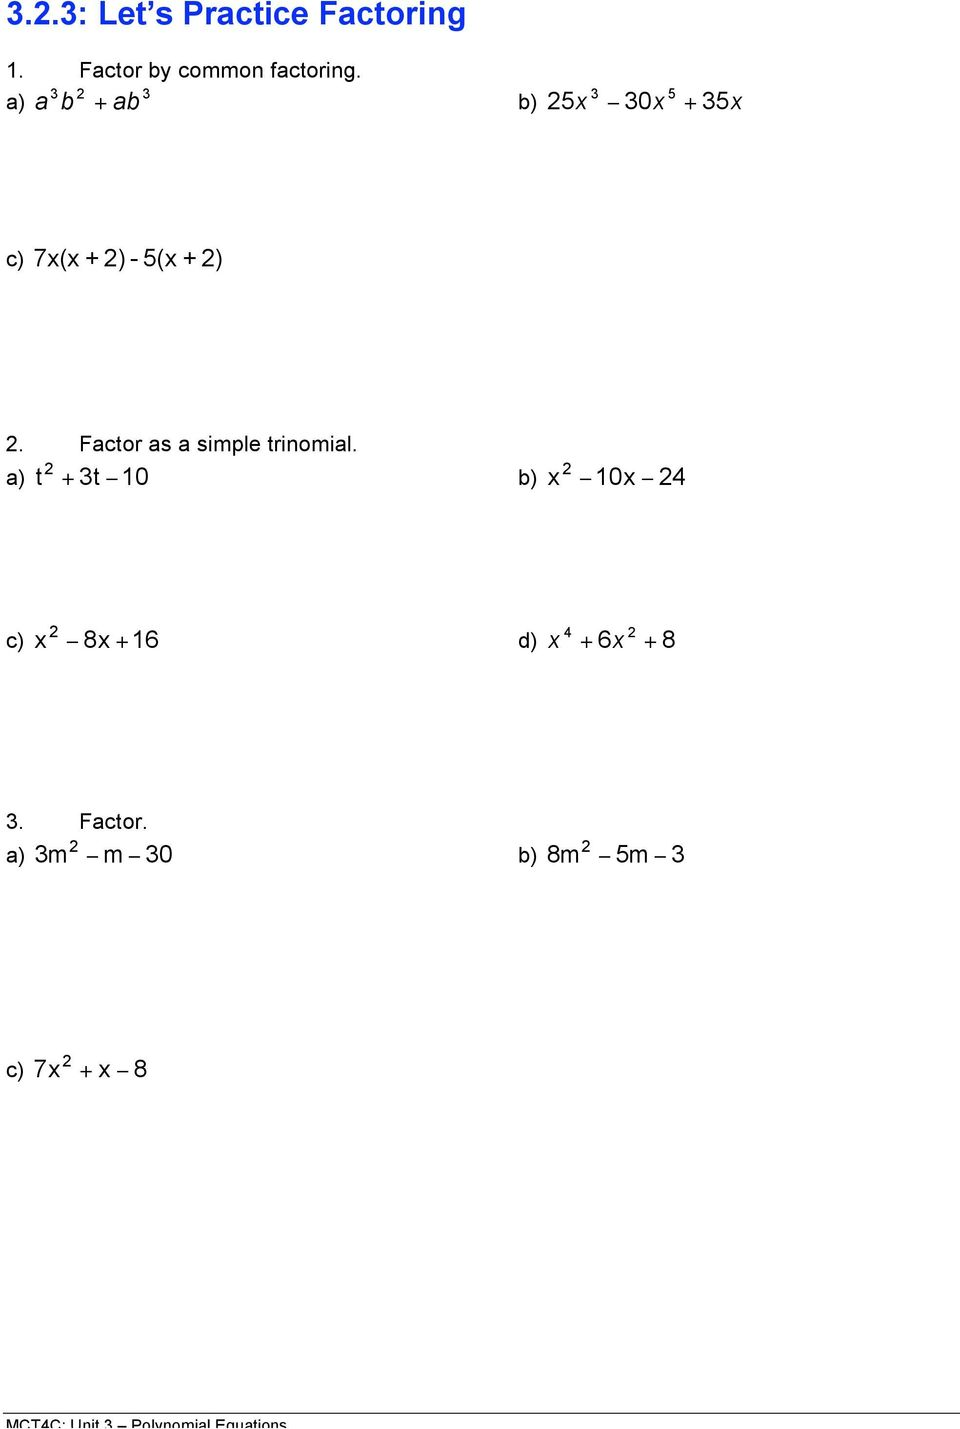 Unit 3: Day 2: Factoring Polynomial Expressions - PDF